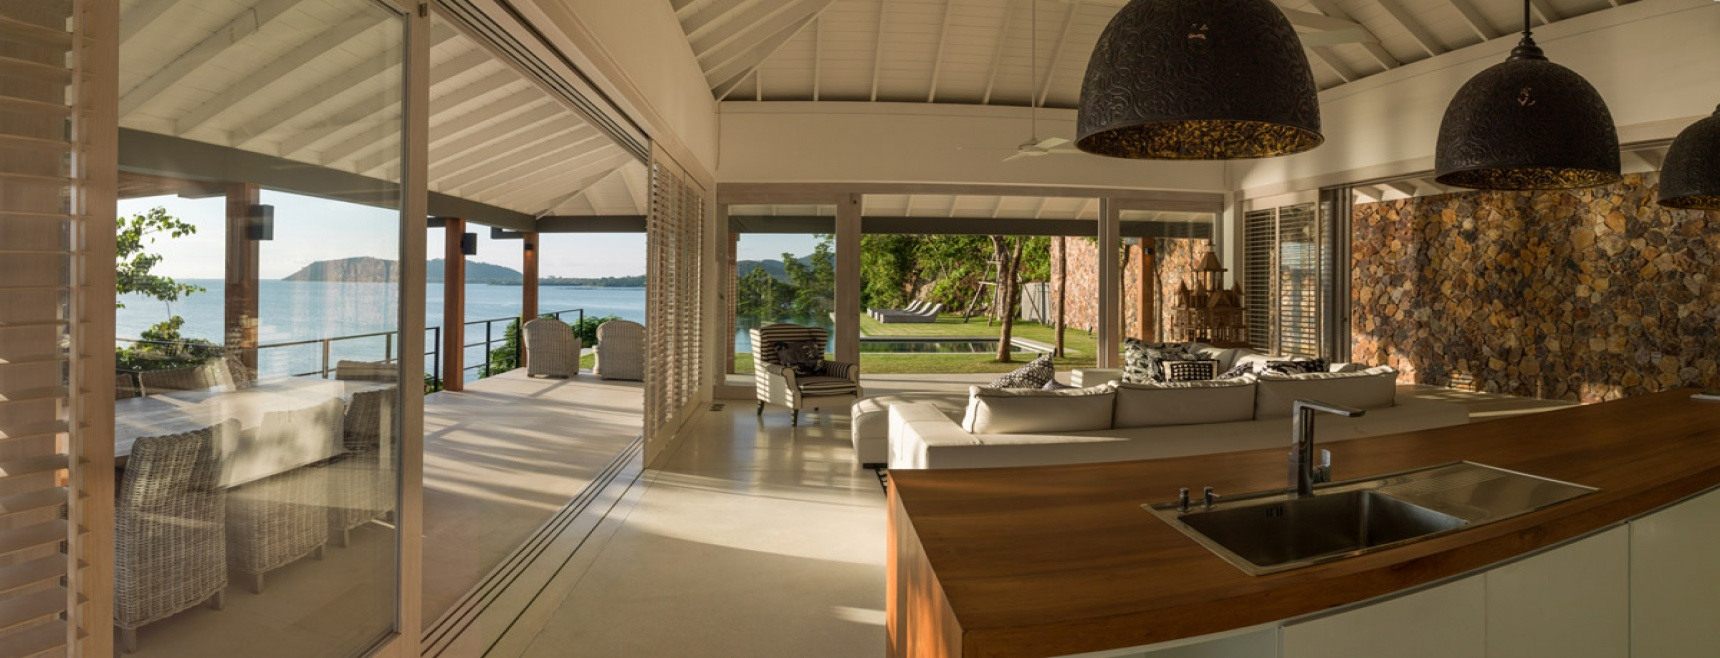 6 Bedrooms, Villa, Residential Sales, 6 Bathrooms, Listing ID 1387, Laem Sor, South West, Koh Samui,